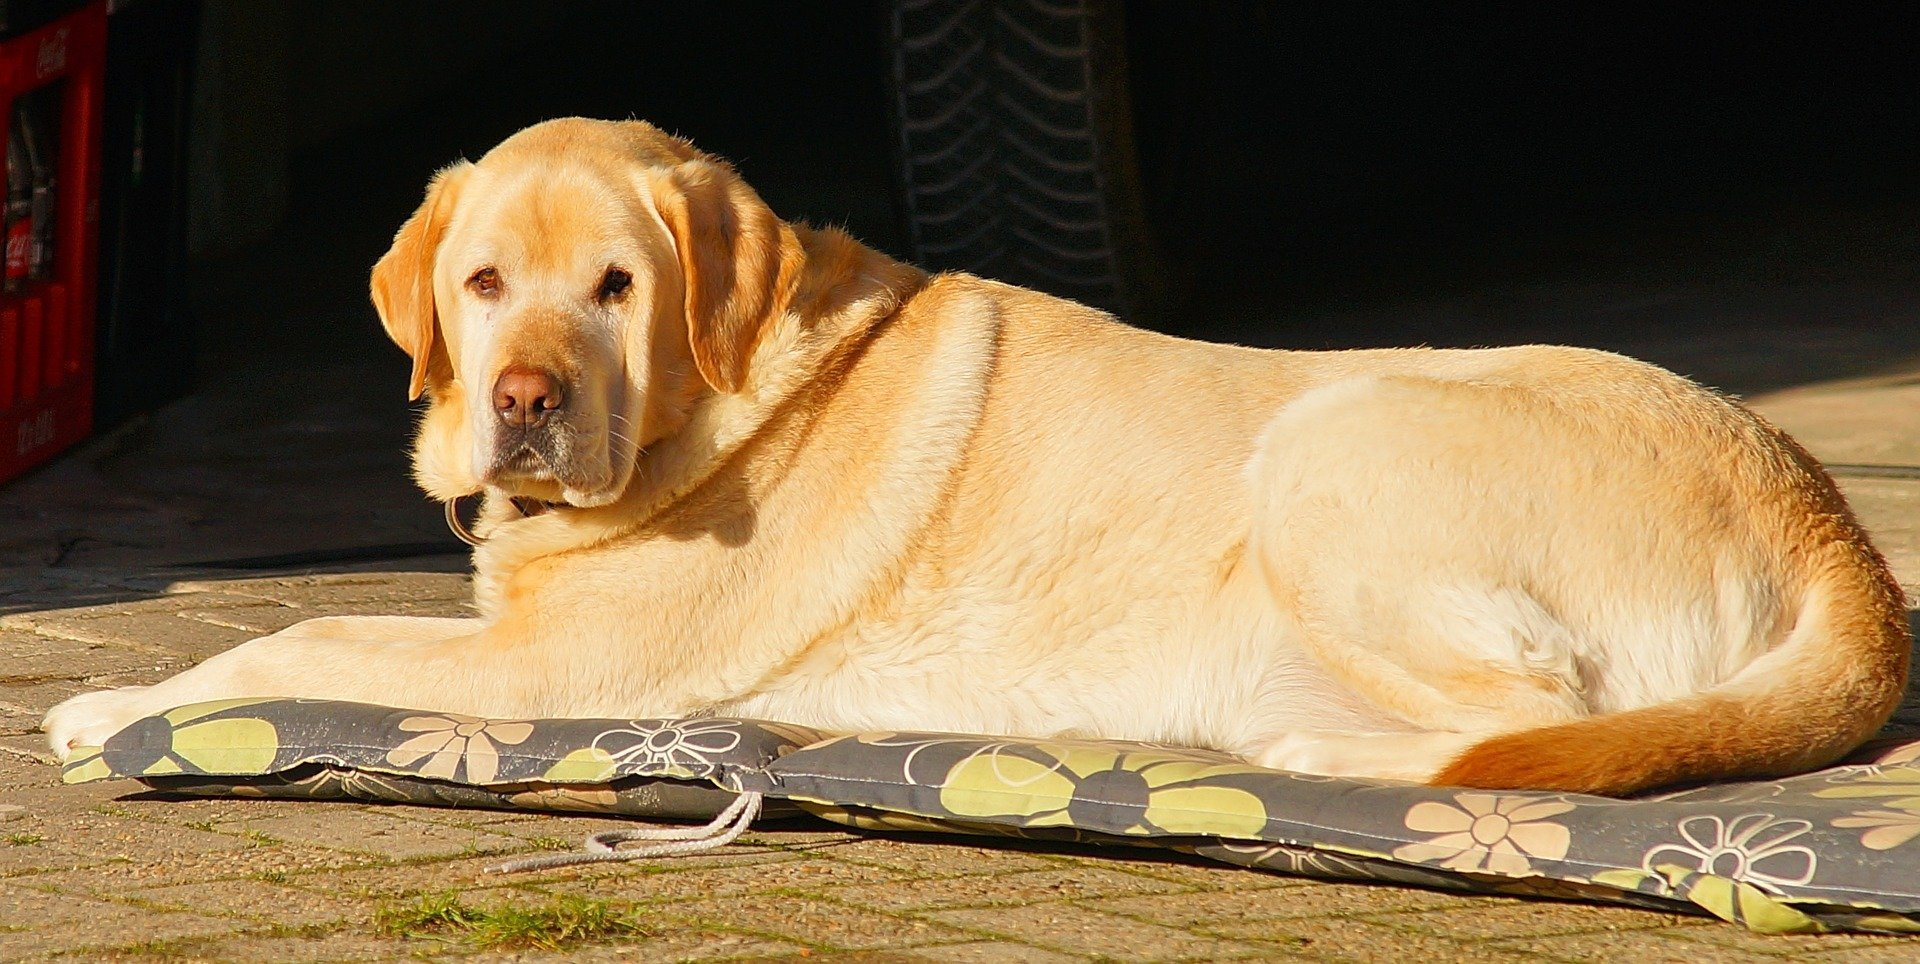 Labrador resting on a mat. | Source: Pixabay